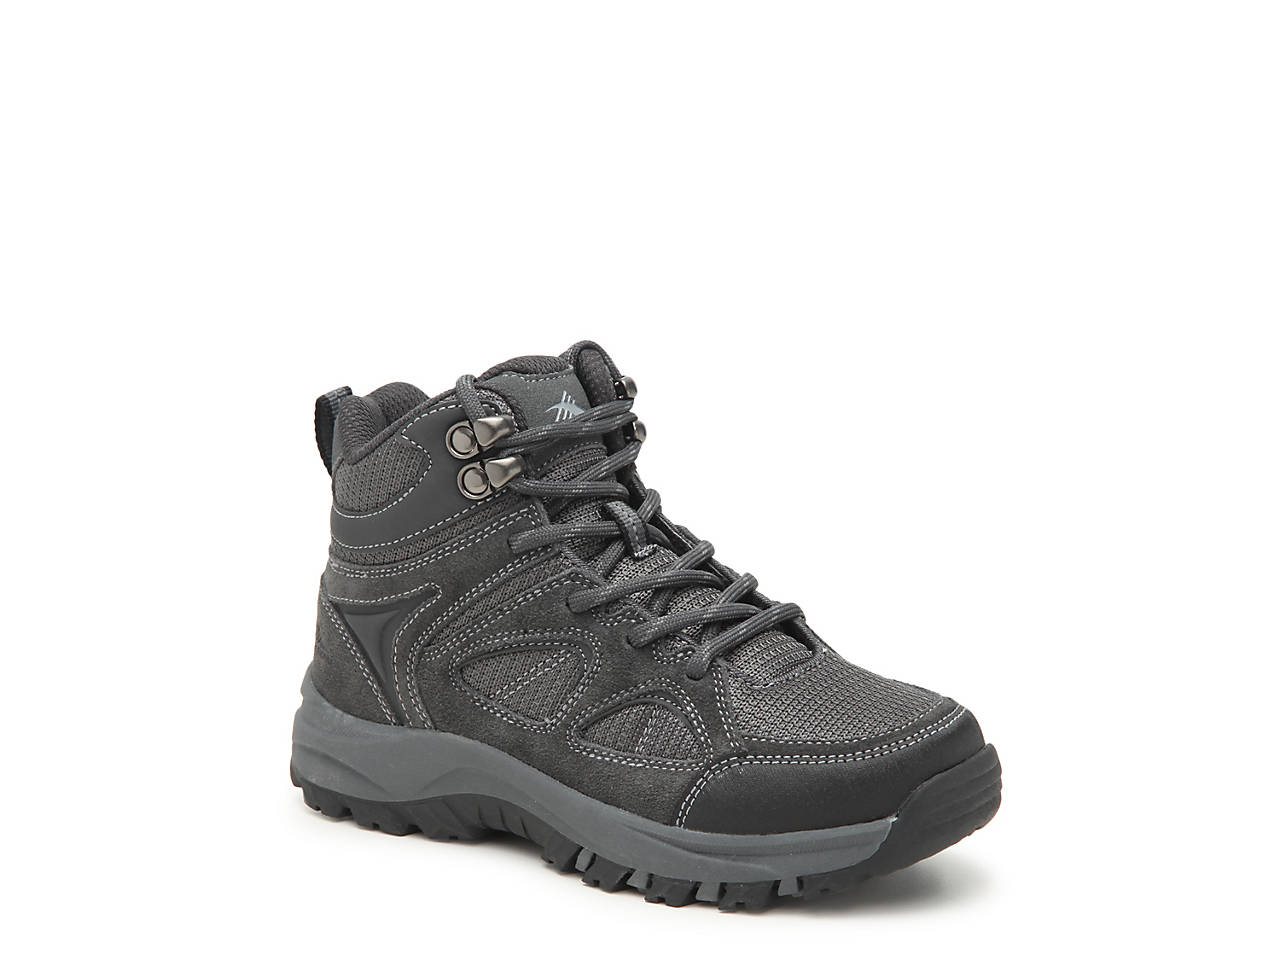 Clothing, Shoes & Accessories Cheap Price Men High Sierra Hiking Trail Work Casual Suede Boots Shoes Size 12 100% Original Boots